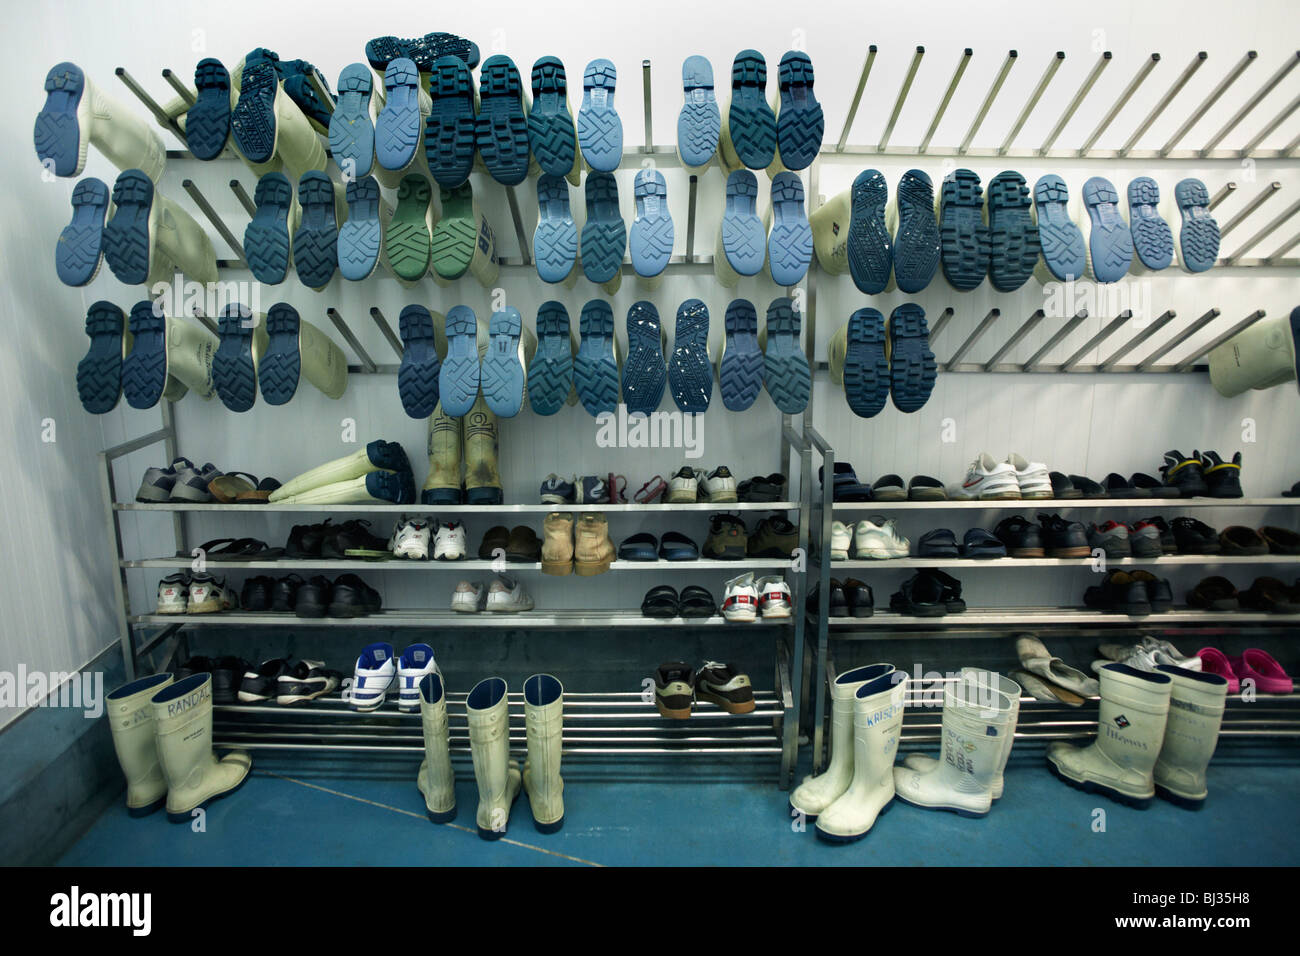 Many pairs of anti-slip Acifort Wellington boots are awaiting users at the New England seafood suppliers in Chessington, Stock Photo